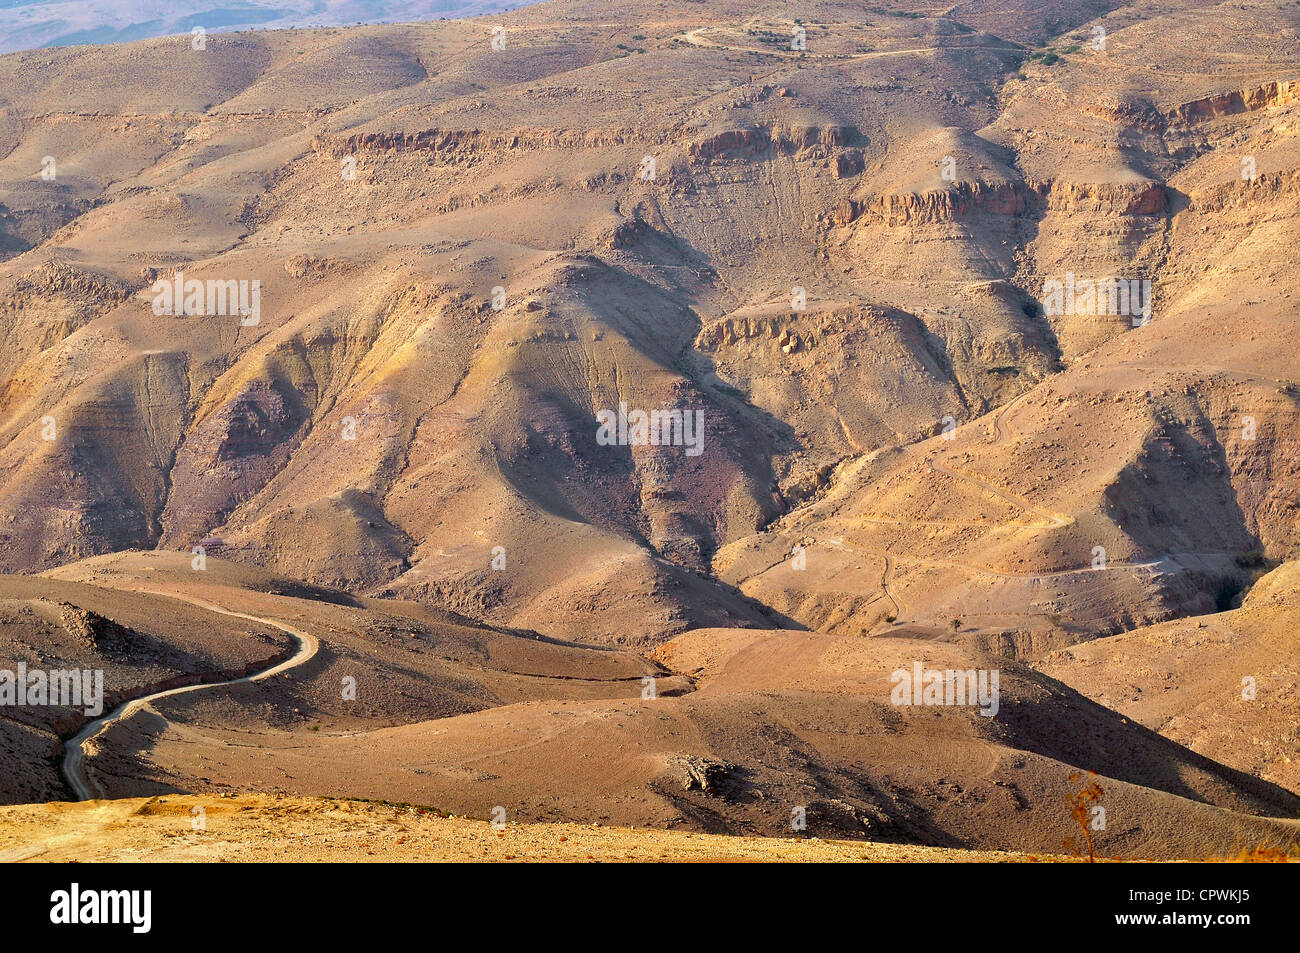 Creazione sarcoma nipote  Asia Jordan Mount Nebo from the top of the mountain view of the Stock Photo  - Alamy